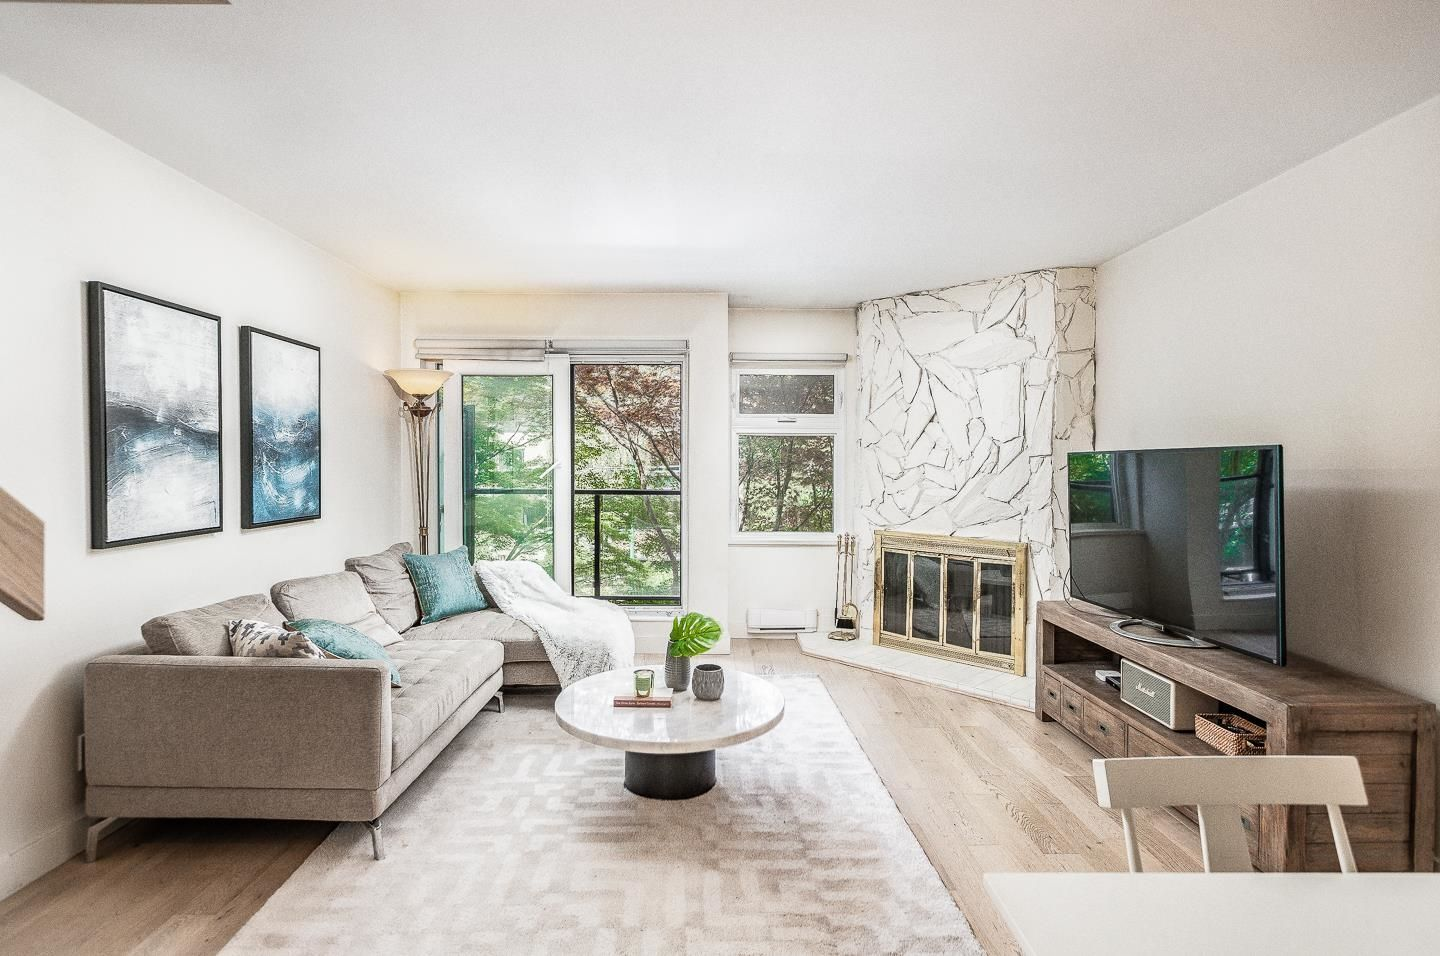 Main Photo: 1282 W 7TH AVENUE in Vancouver: Fairview VW Townhouse for sale (Vancouver West)  : MLS®# R2609594